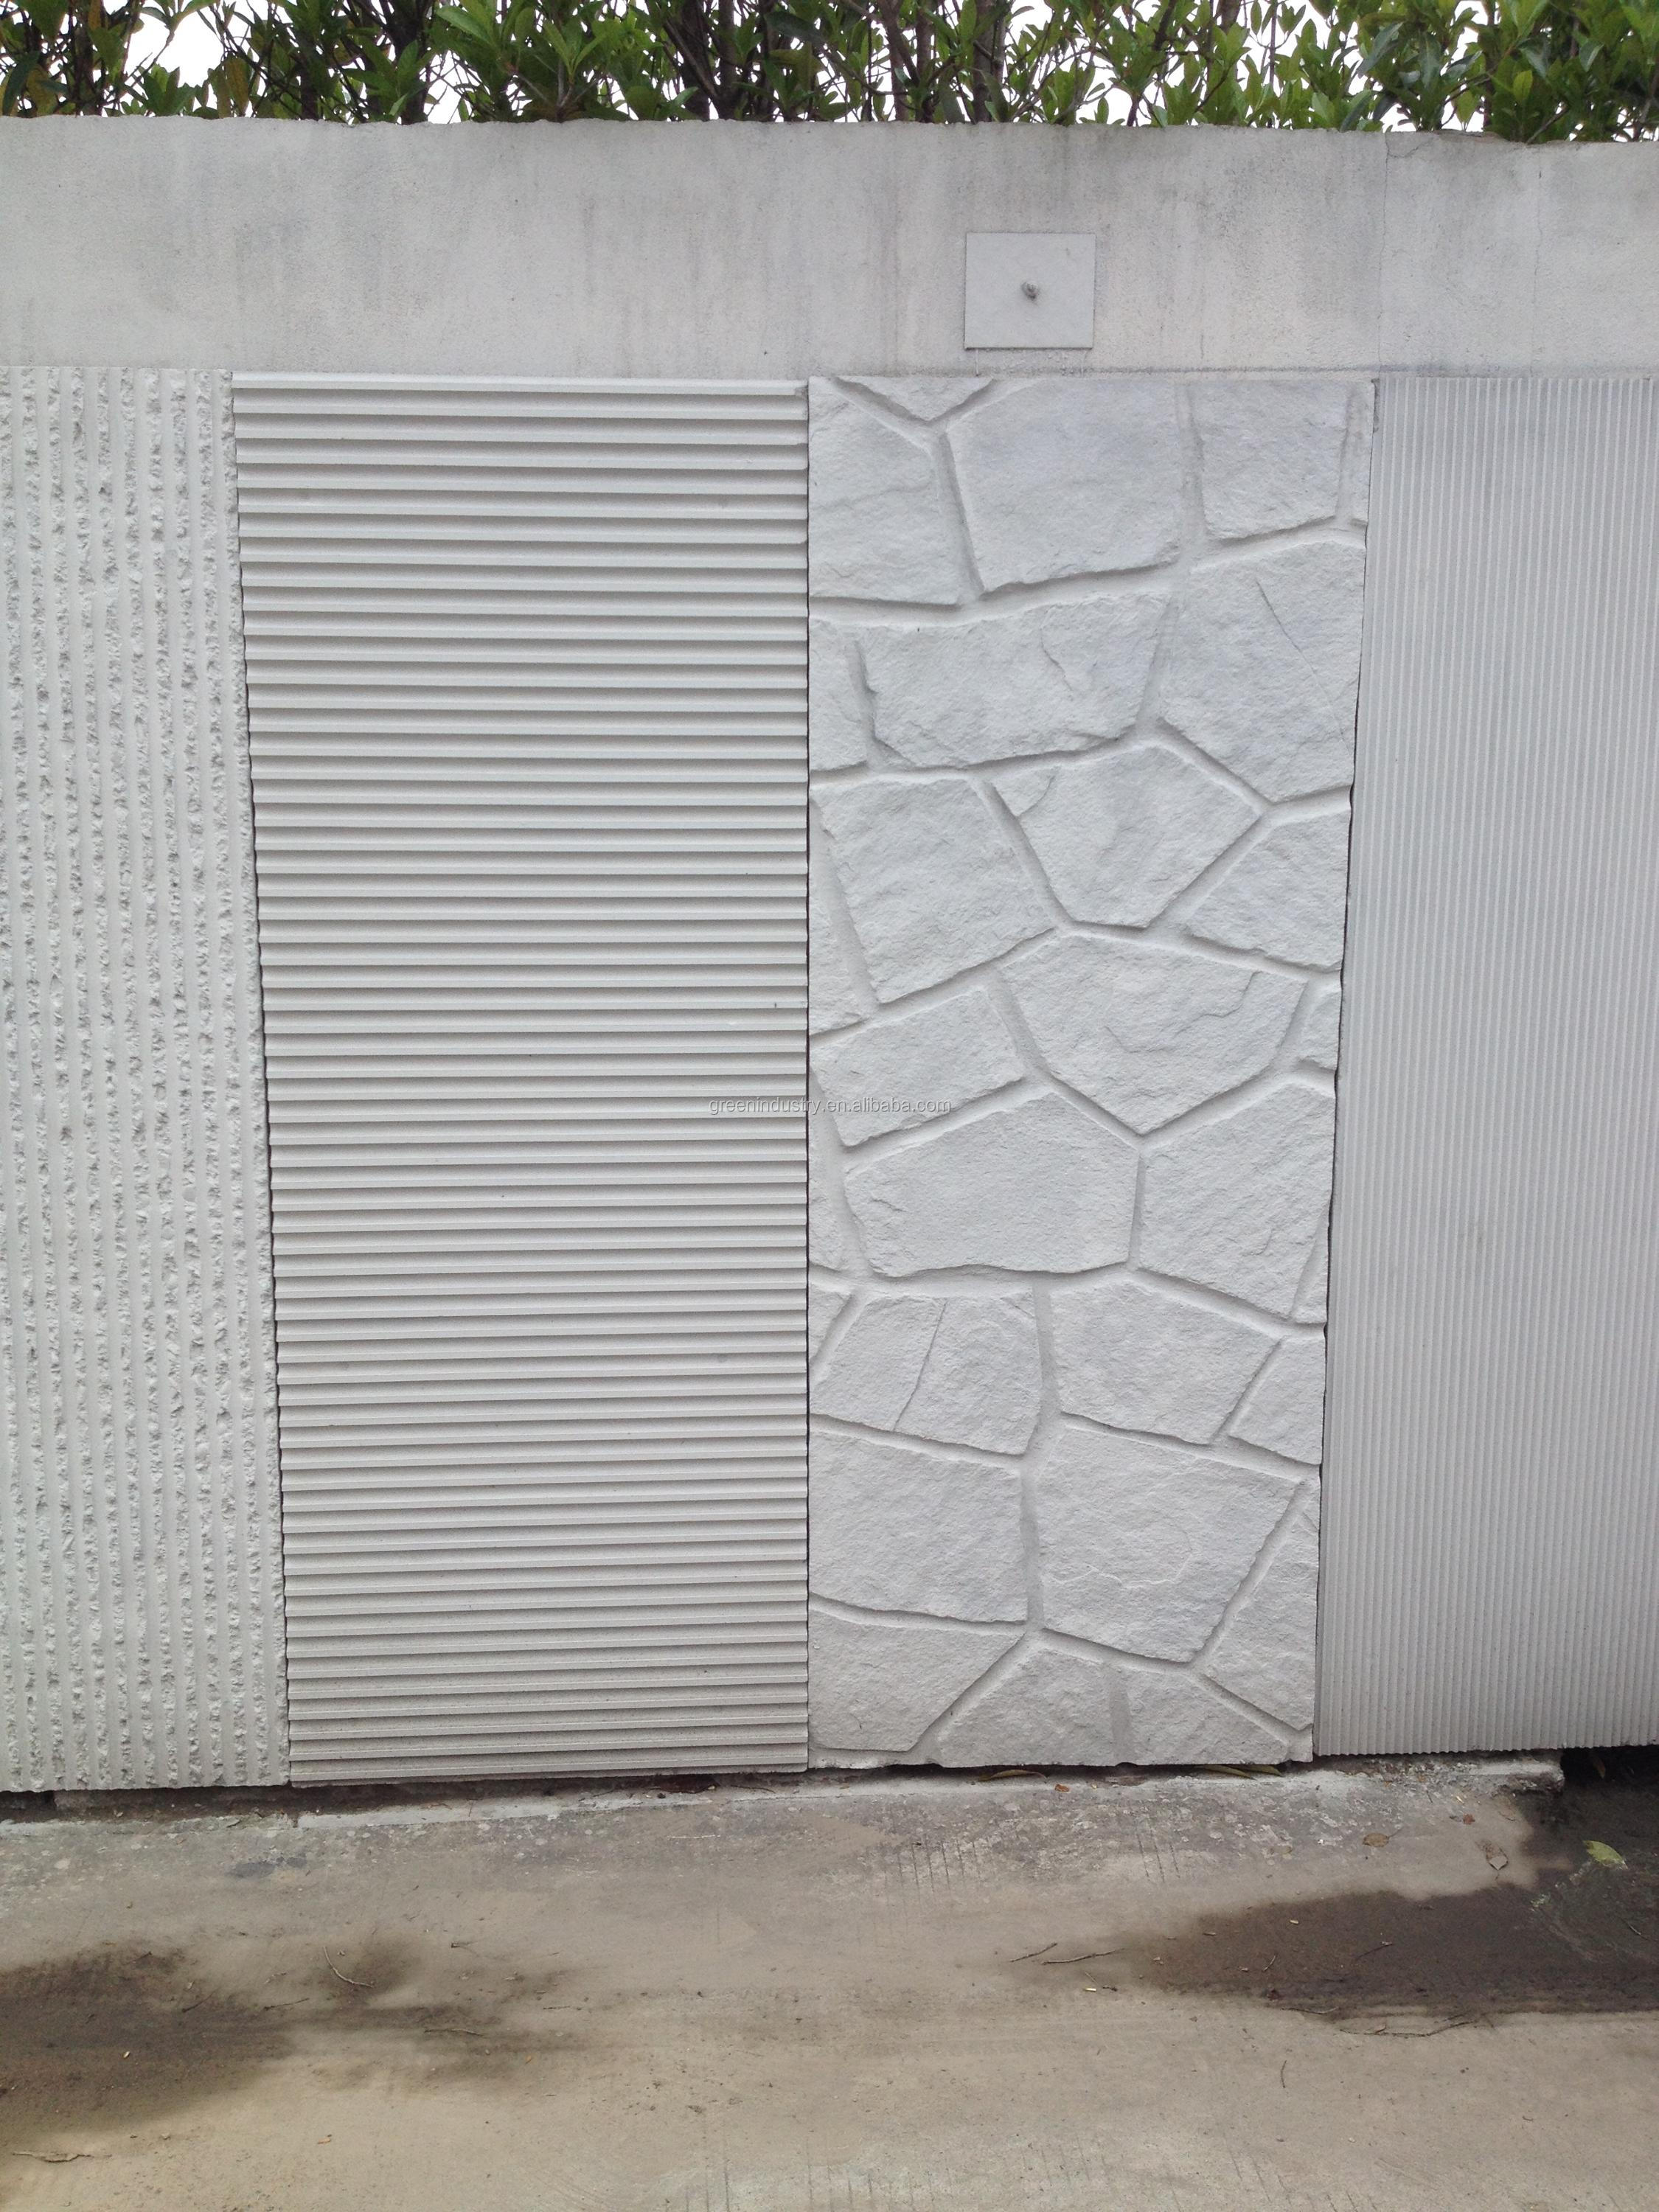 Facade Cladding Fireproof Cement Coating Decorative Sheet Exterior Wall Panel